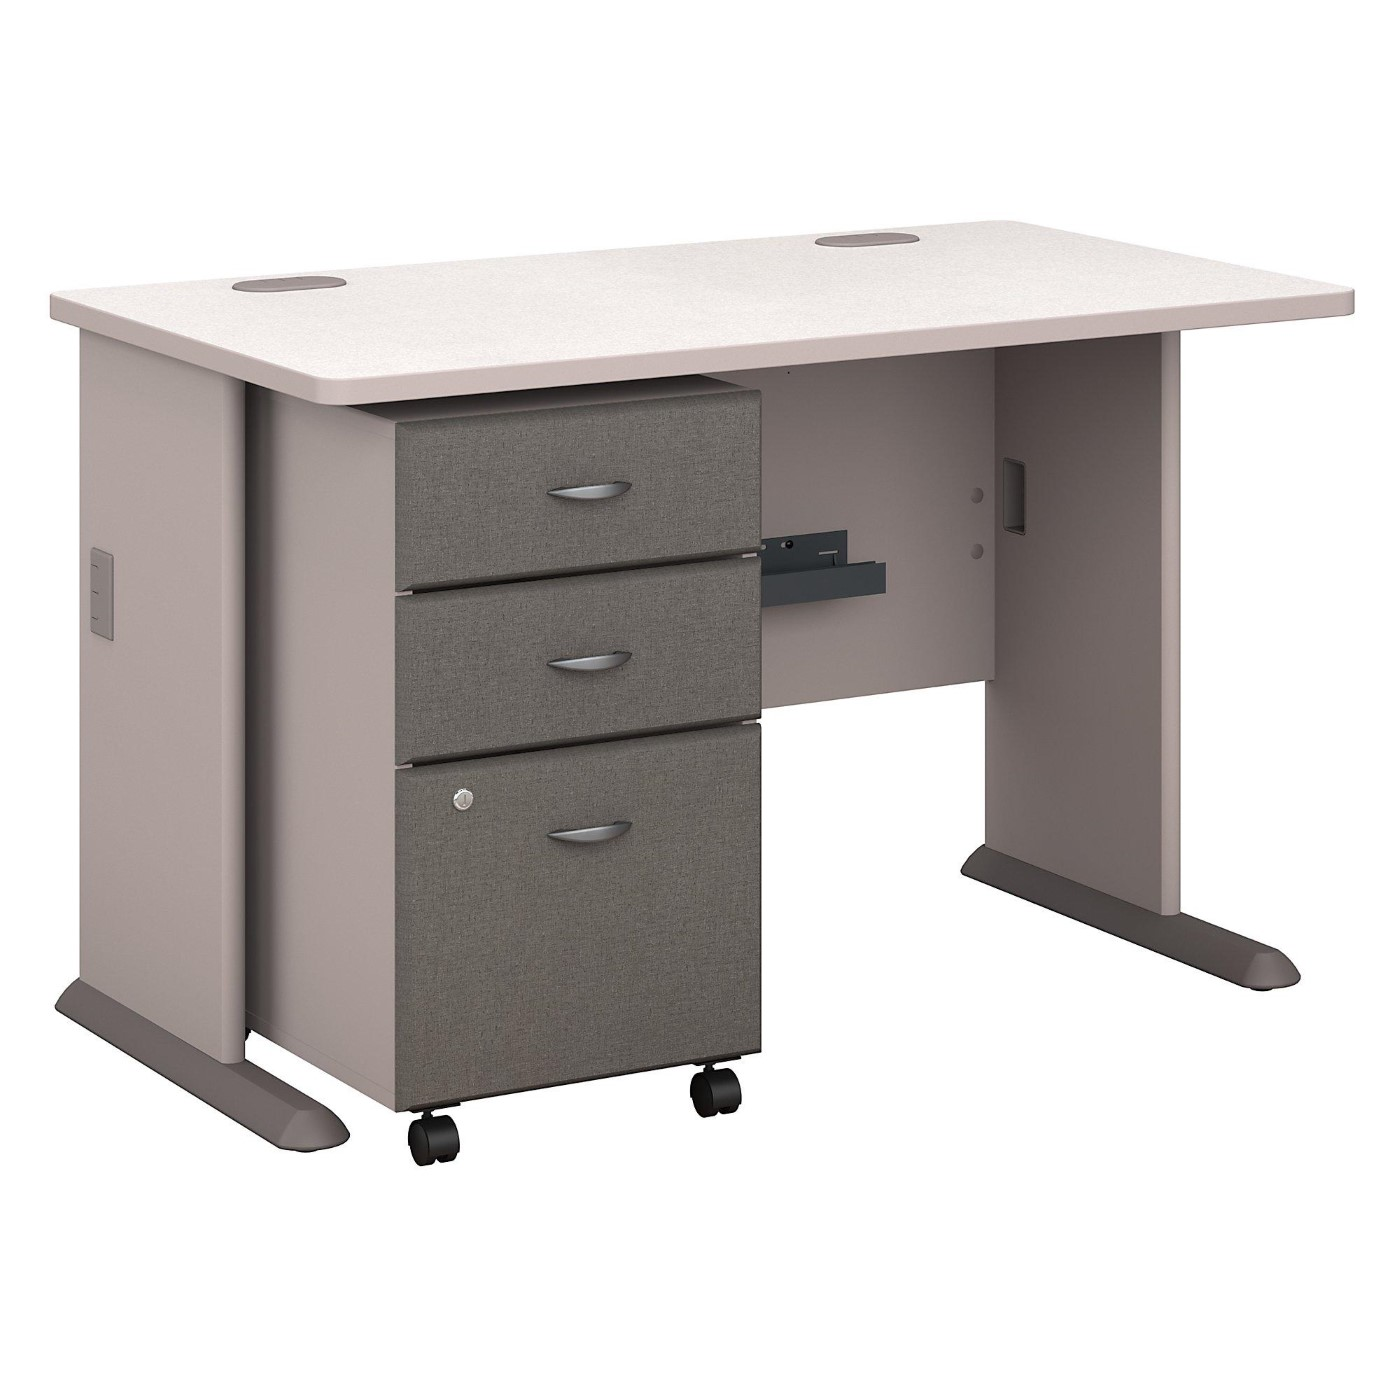 <font color=#c60><b>BUSH BUSINESS FURNITURE SERIES A 48W DESK WITH MOBILE FILE CABINET. FREE SHIPPING</font></b>